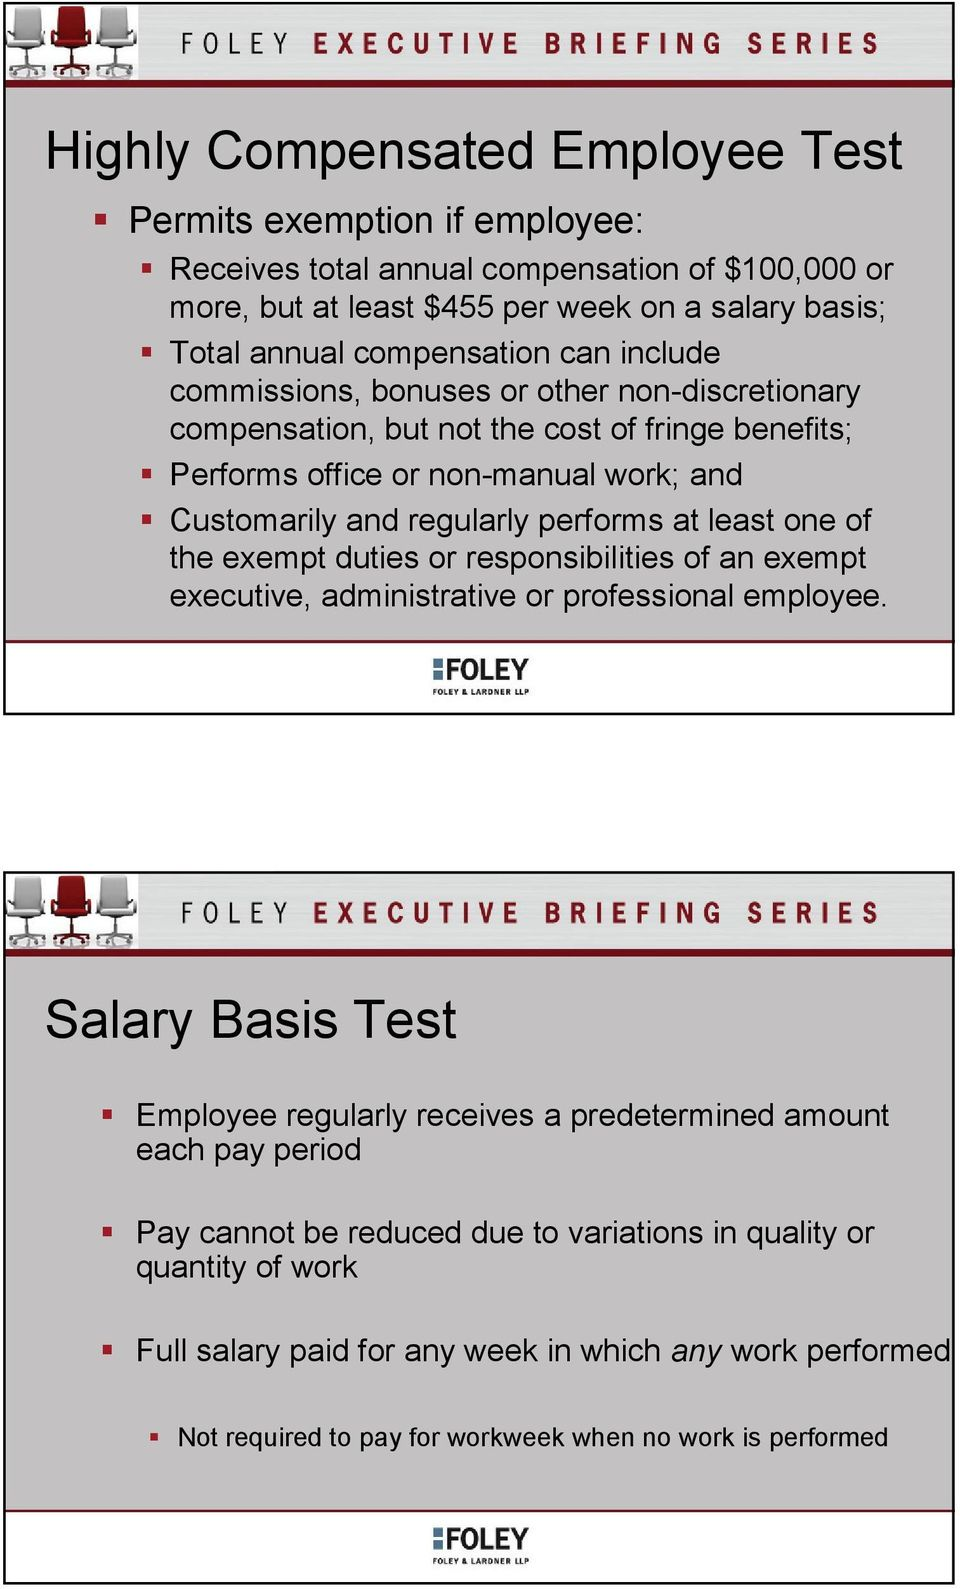 least one of the exempt duties or responsibilities of an exempt executive, administrative or professional employee.